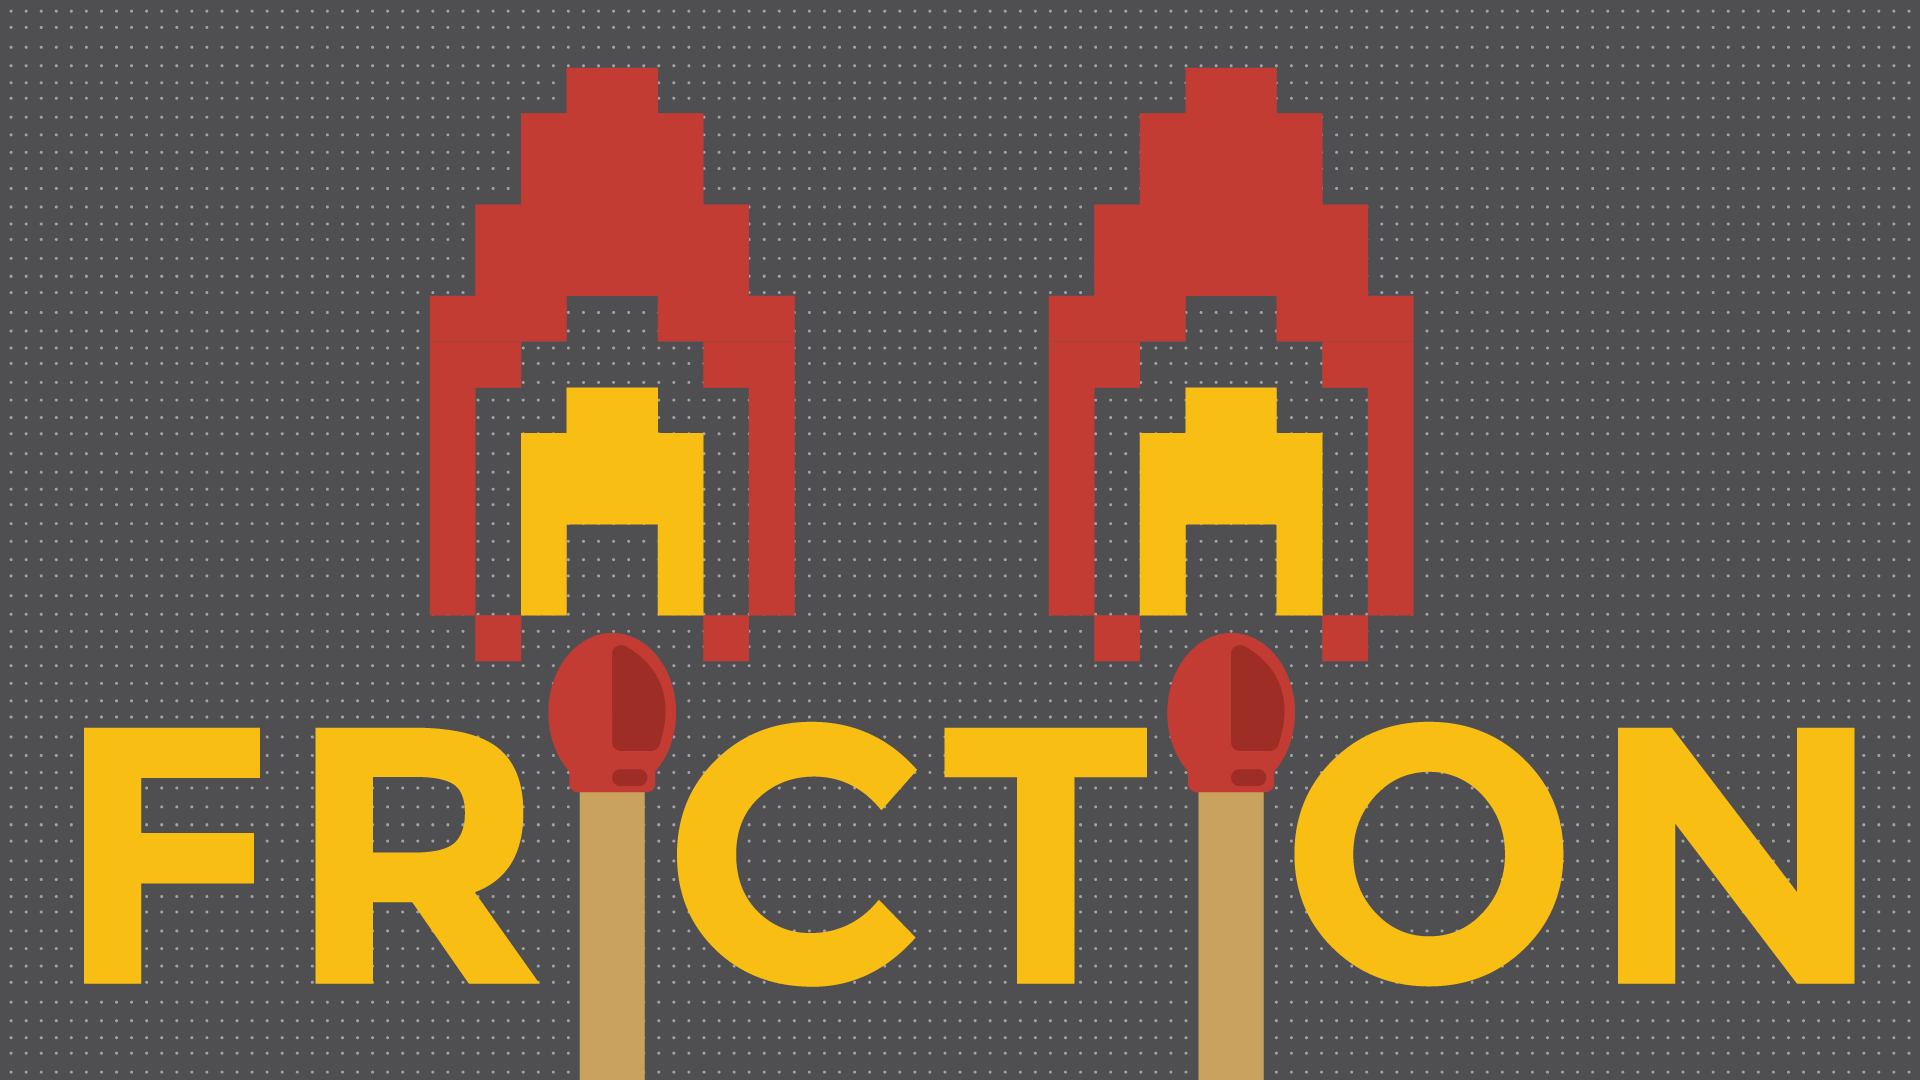 Friction: What's Keeping You from Your Goals? Featured Image